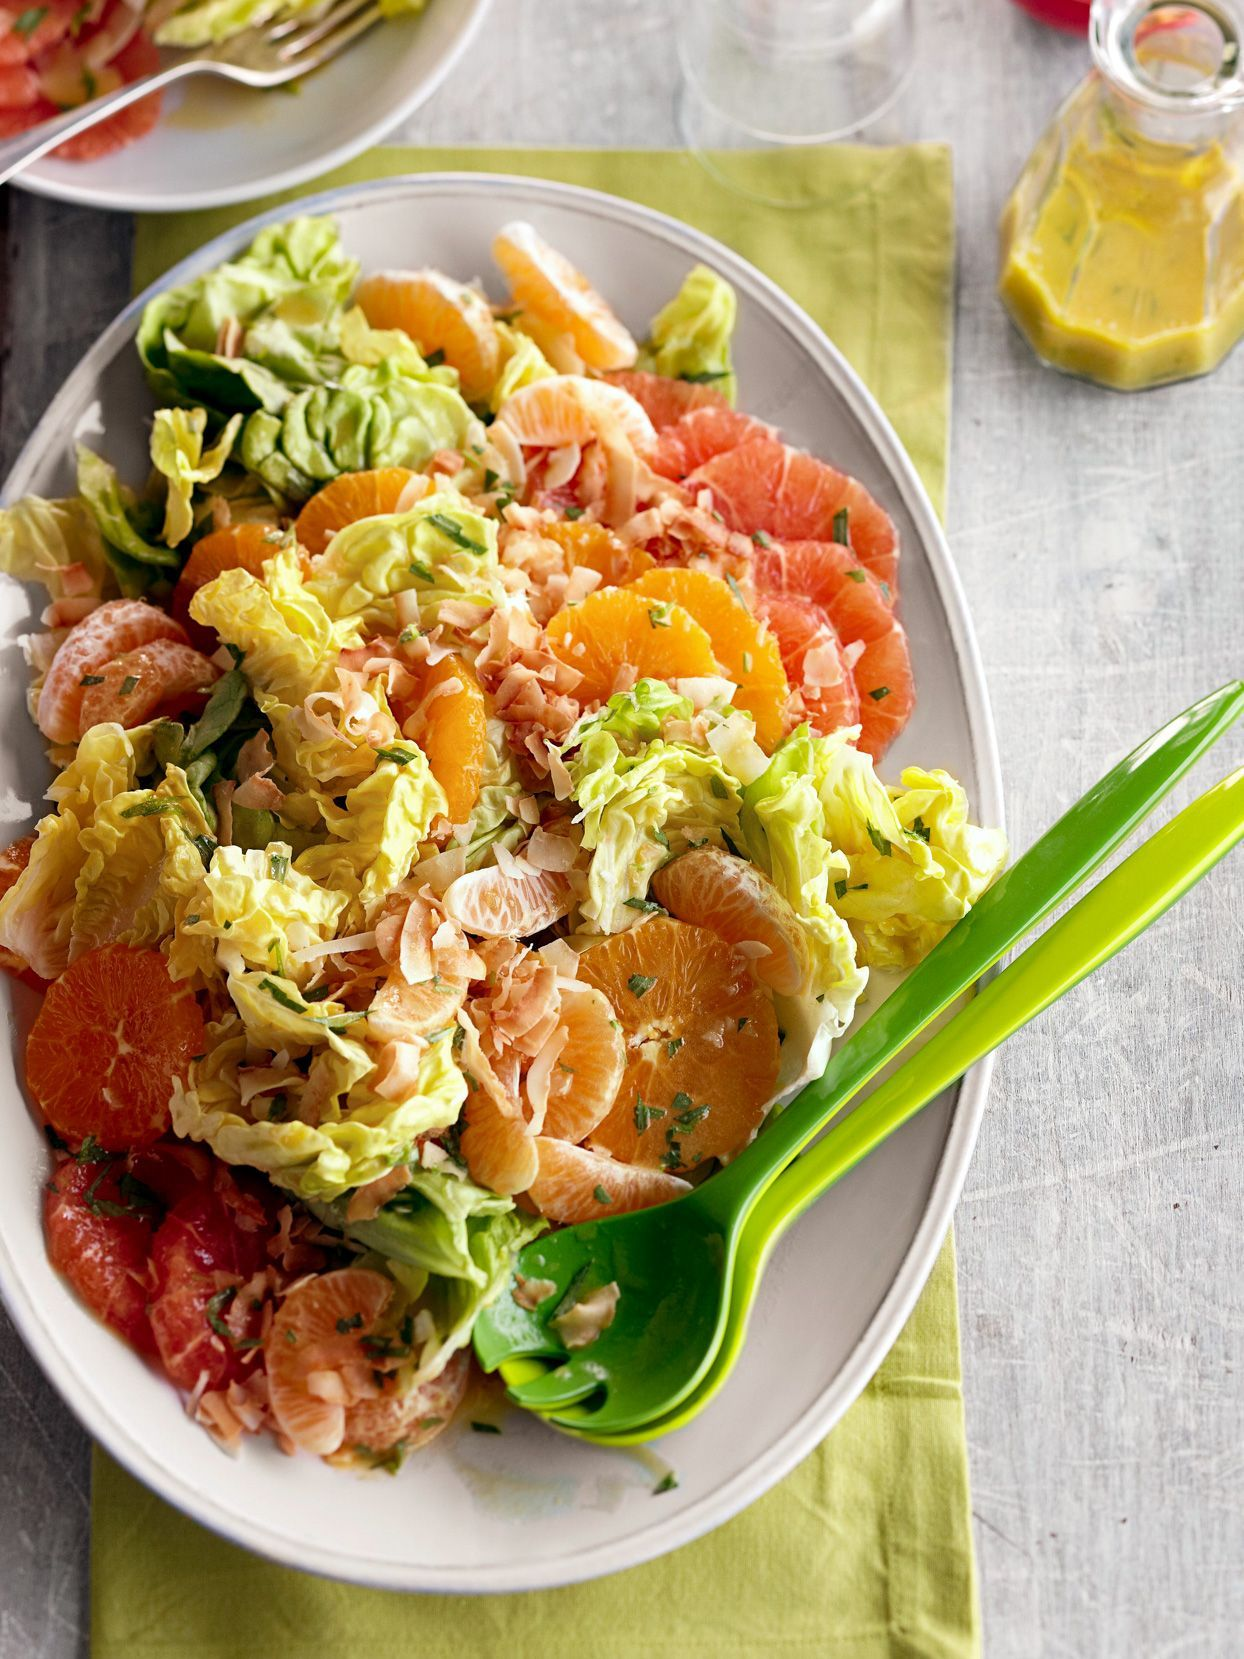 Perk up dinner tonight with a blast of fresh citrus. Celebrate citrus with our favorite savory and sweet lemon, orange, and grapefruit recipes—all doable in 40 minutes or less. #freshrecipes #citrusrecipes #citrusdinners #winter #healthy #bhg